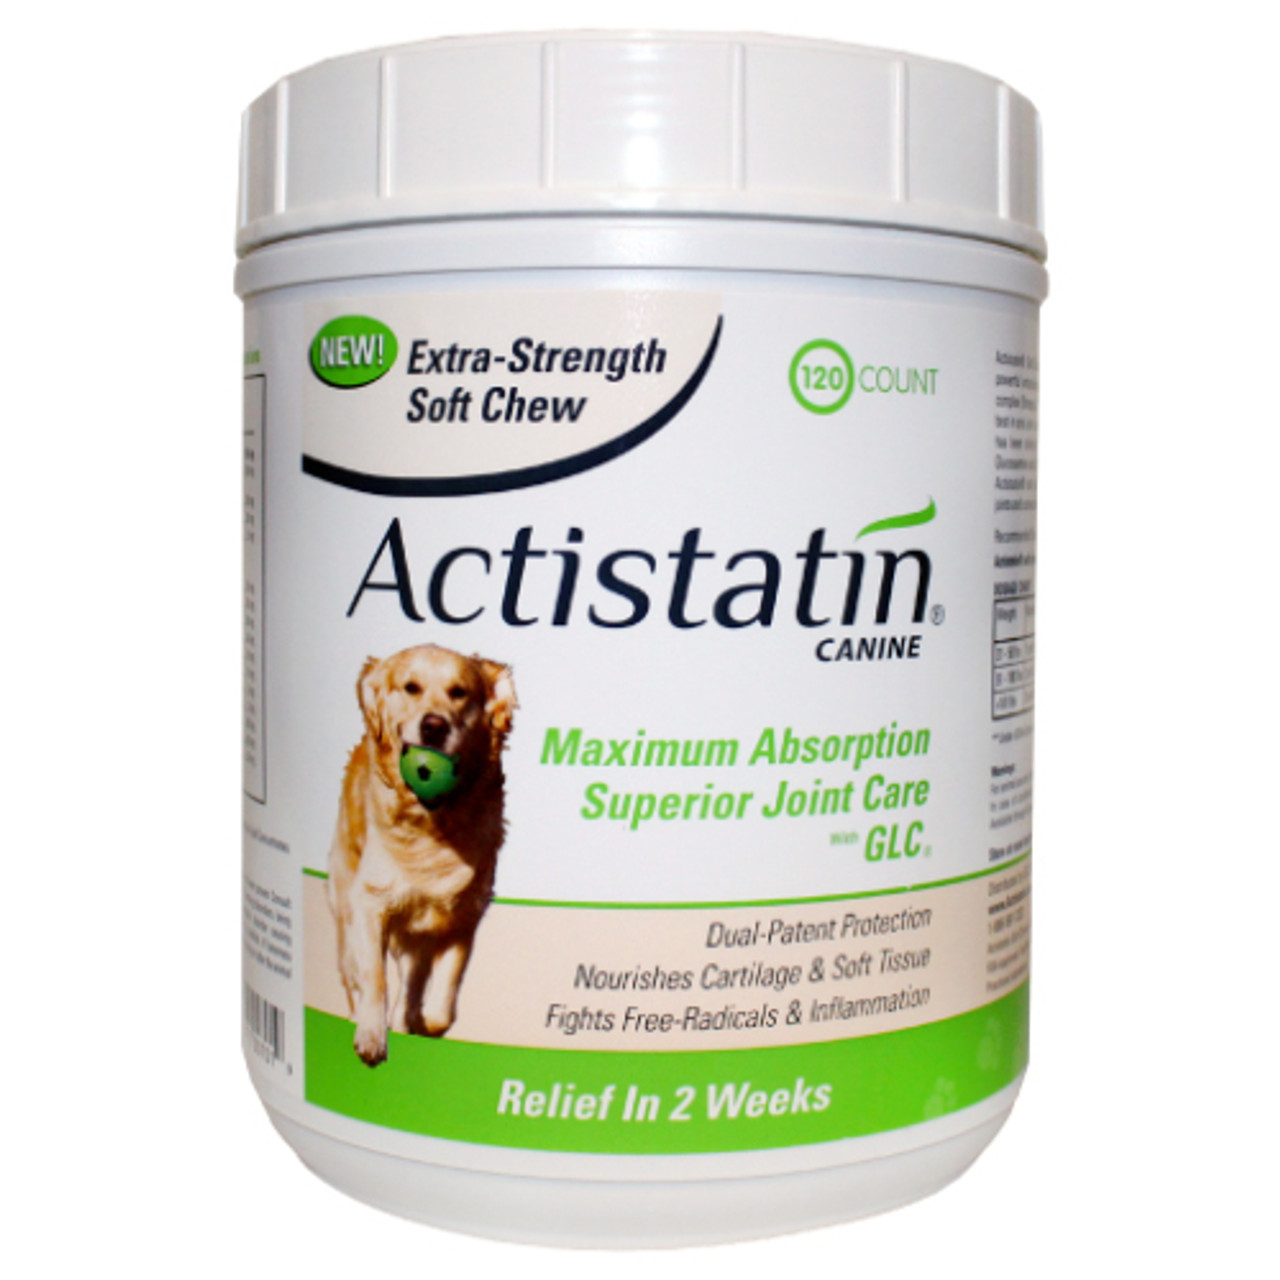 Actistatin Extra Strength for Large Dogs (120 Soft Chews)